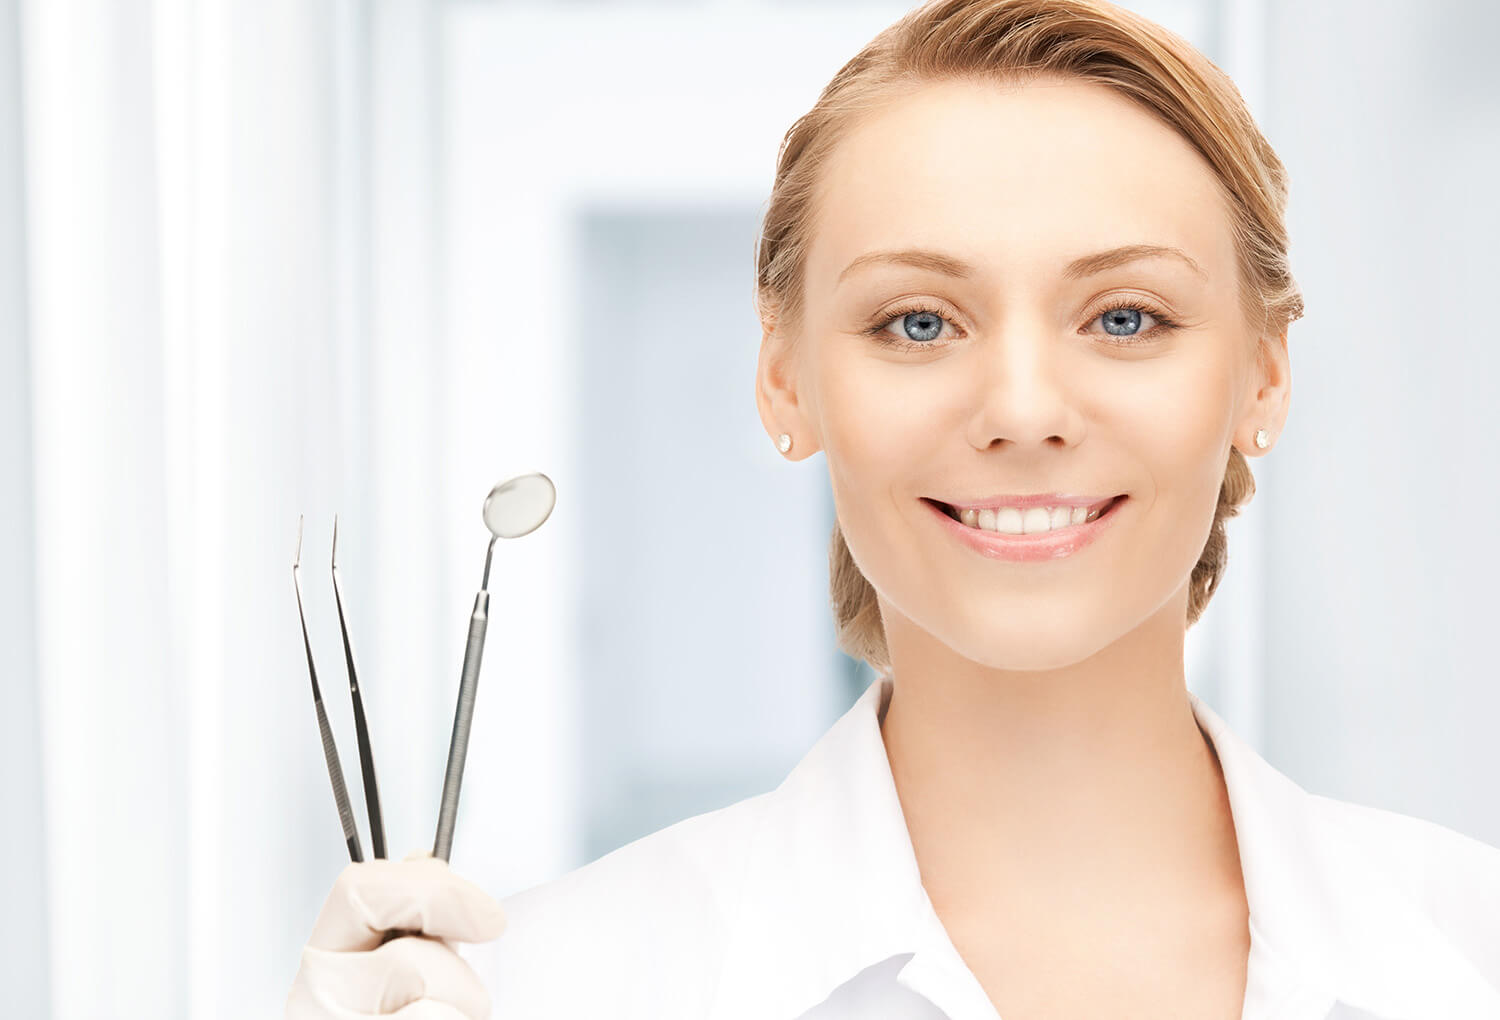 dentist with tools